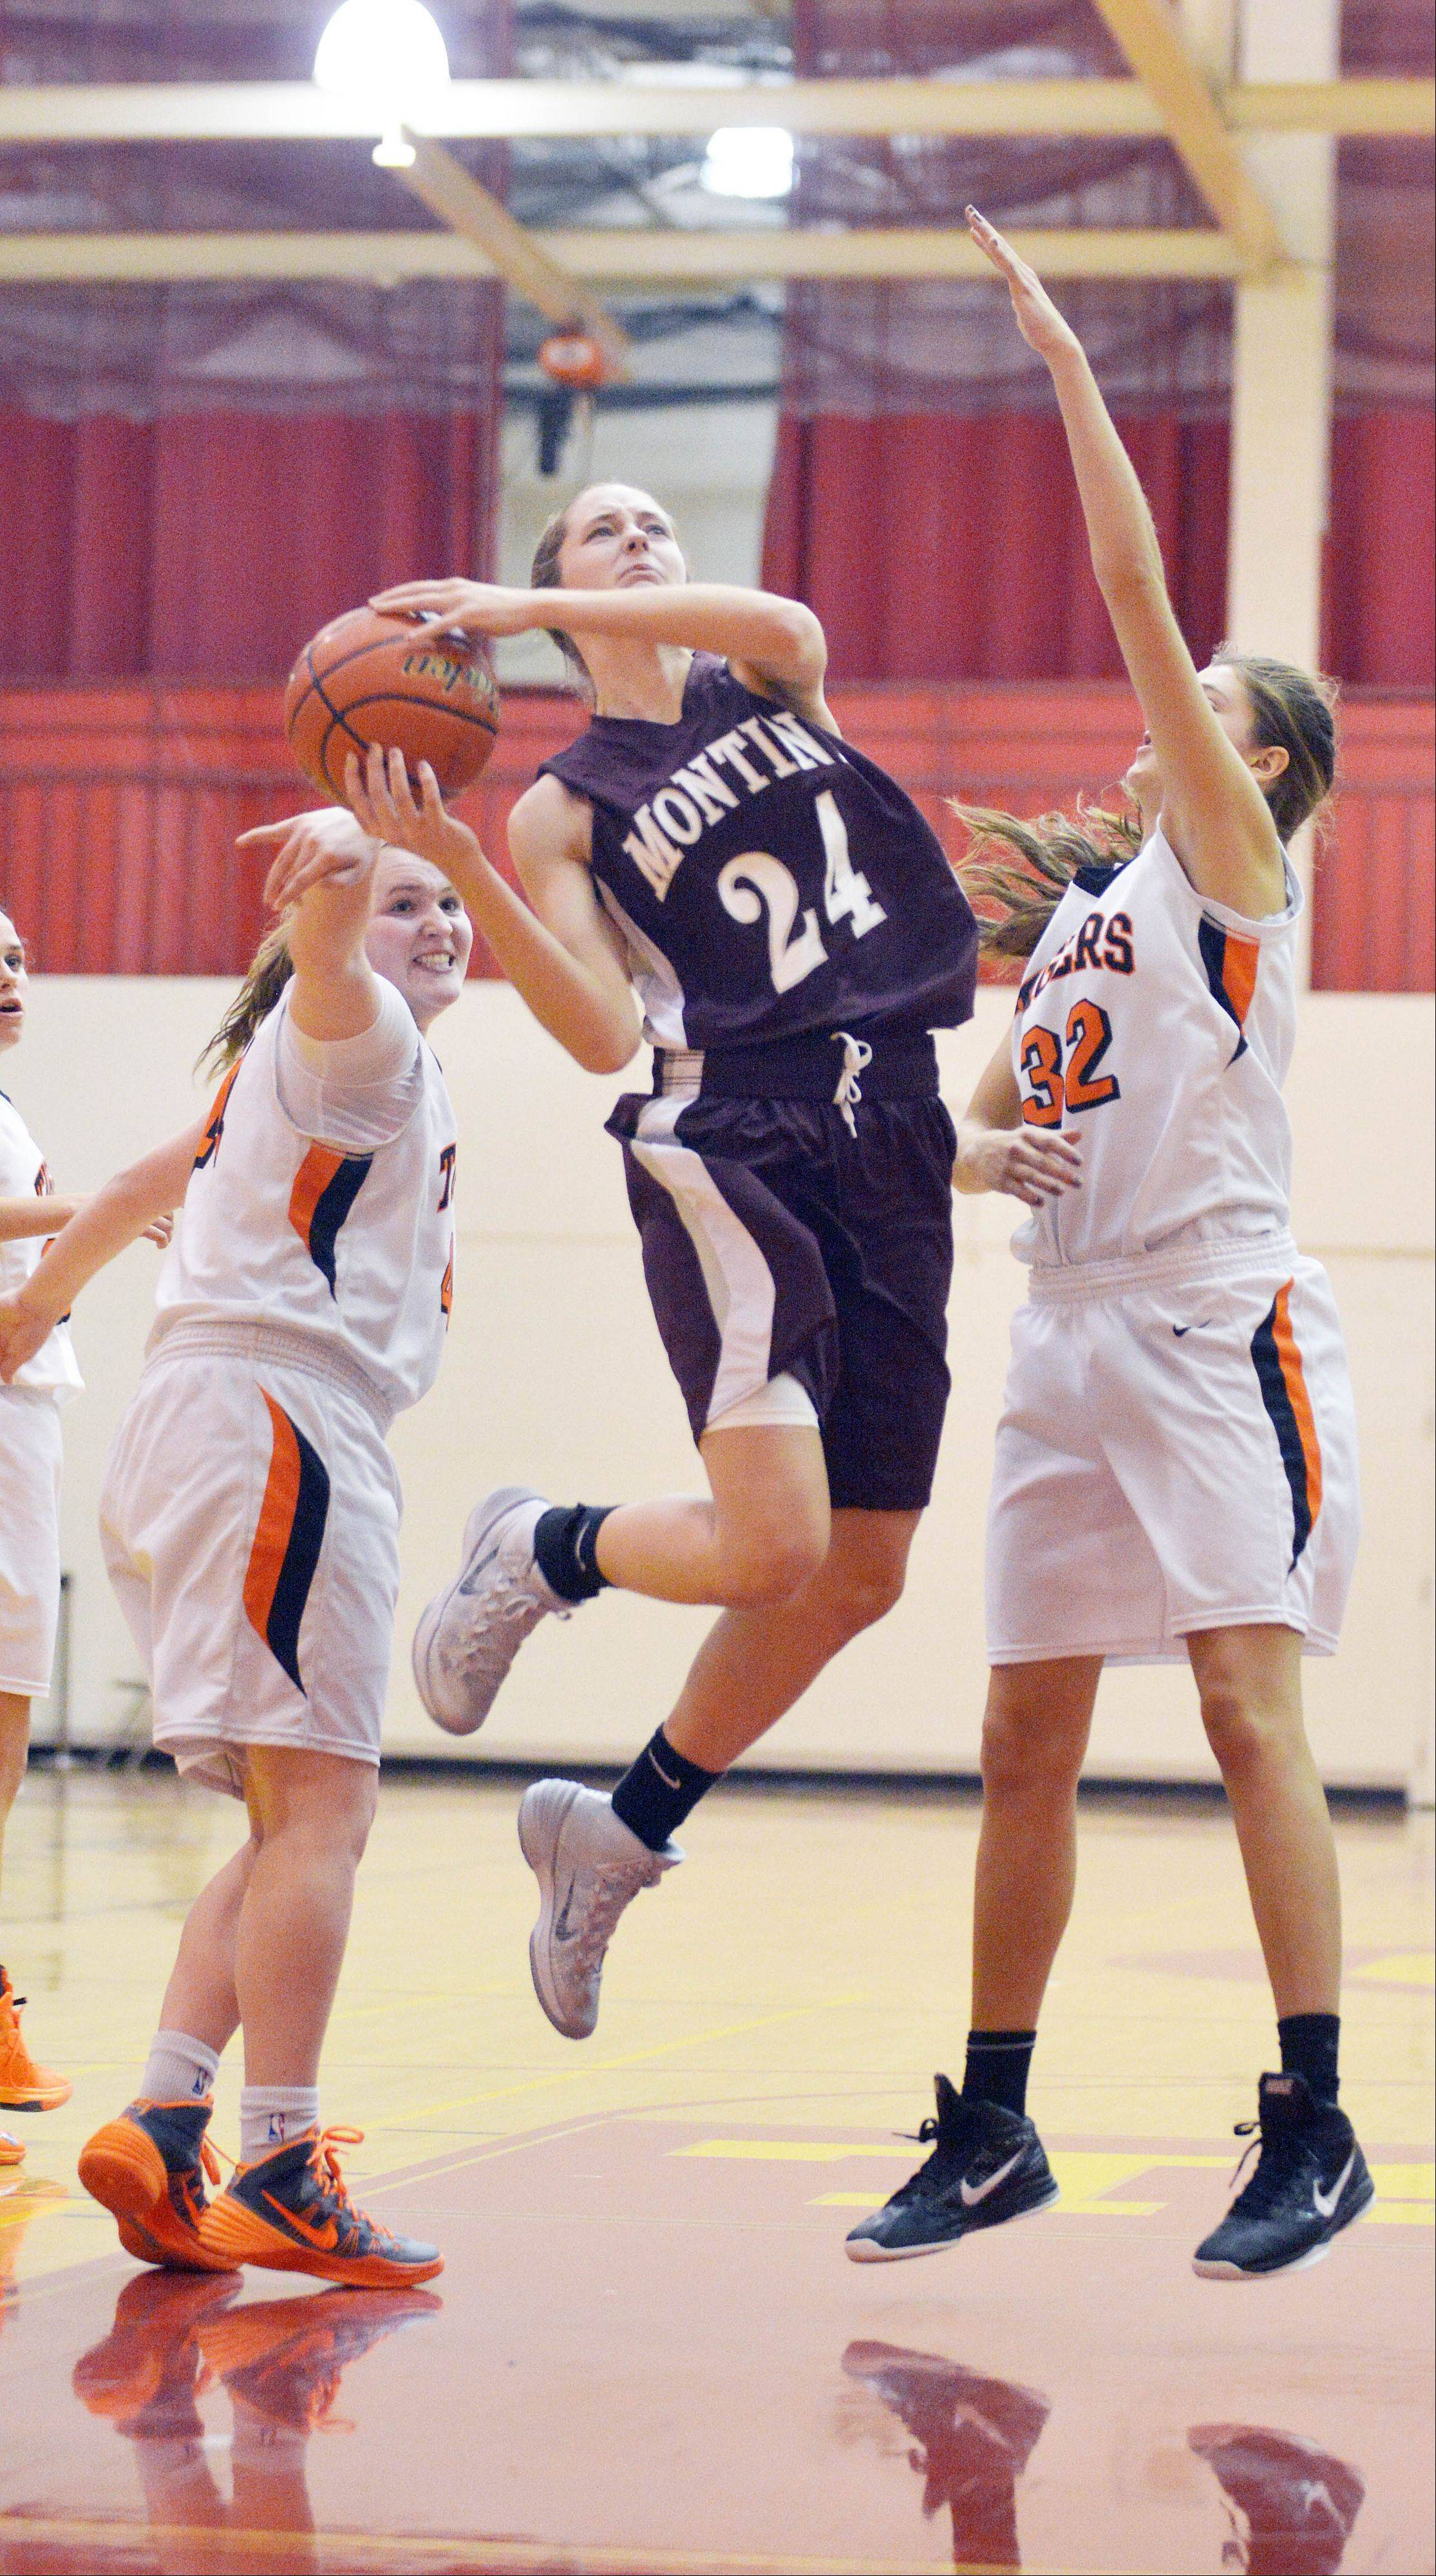 Kateri Stone of Montini, center, takes one to the net during the Wheaton Warrenville South vs. Montini girls basketball game at the Schaumburg tournament Friday. Olivia Linebarger, left, and Erin Zappia were attempting to block the shot.